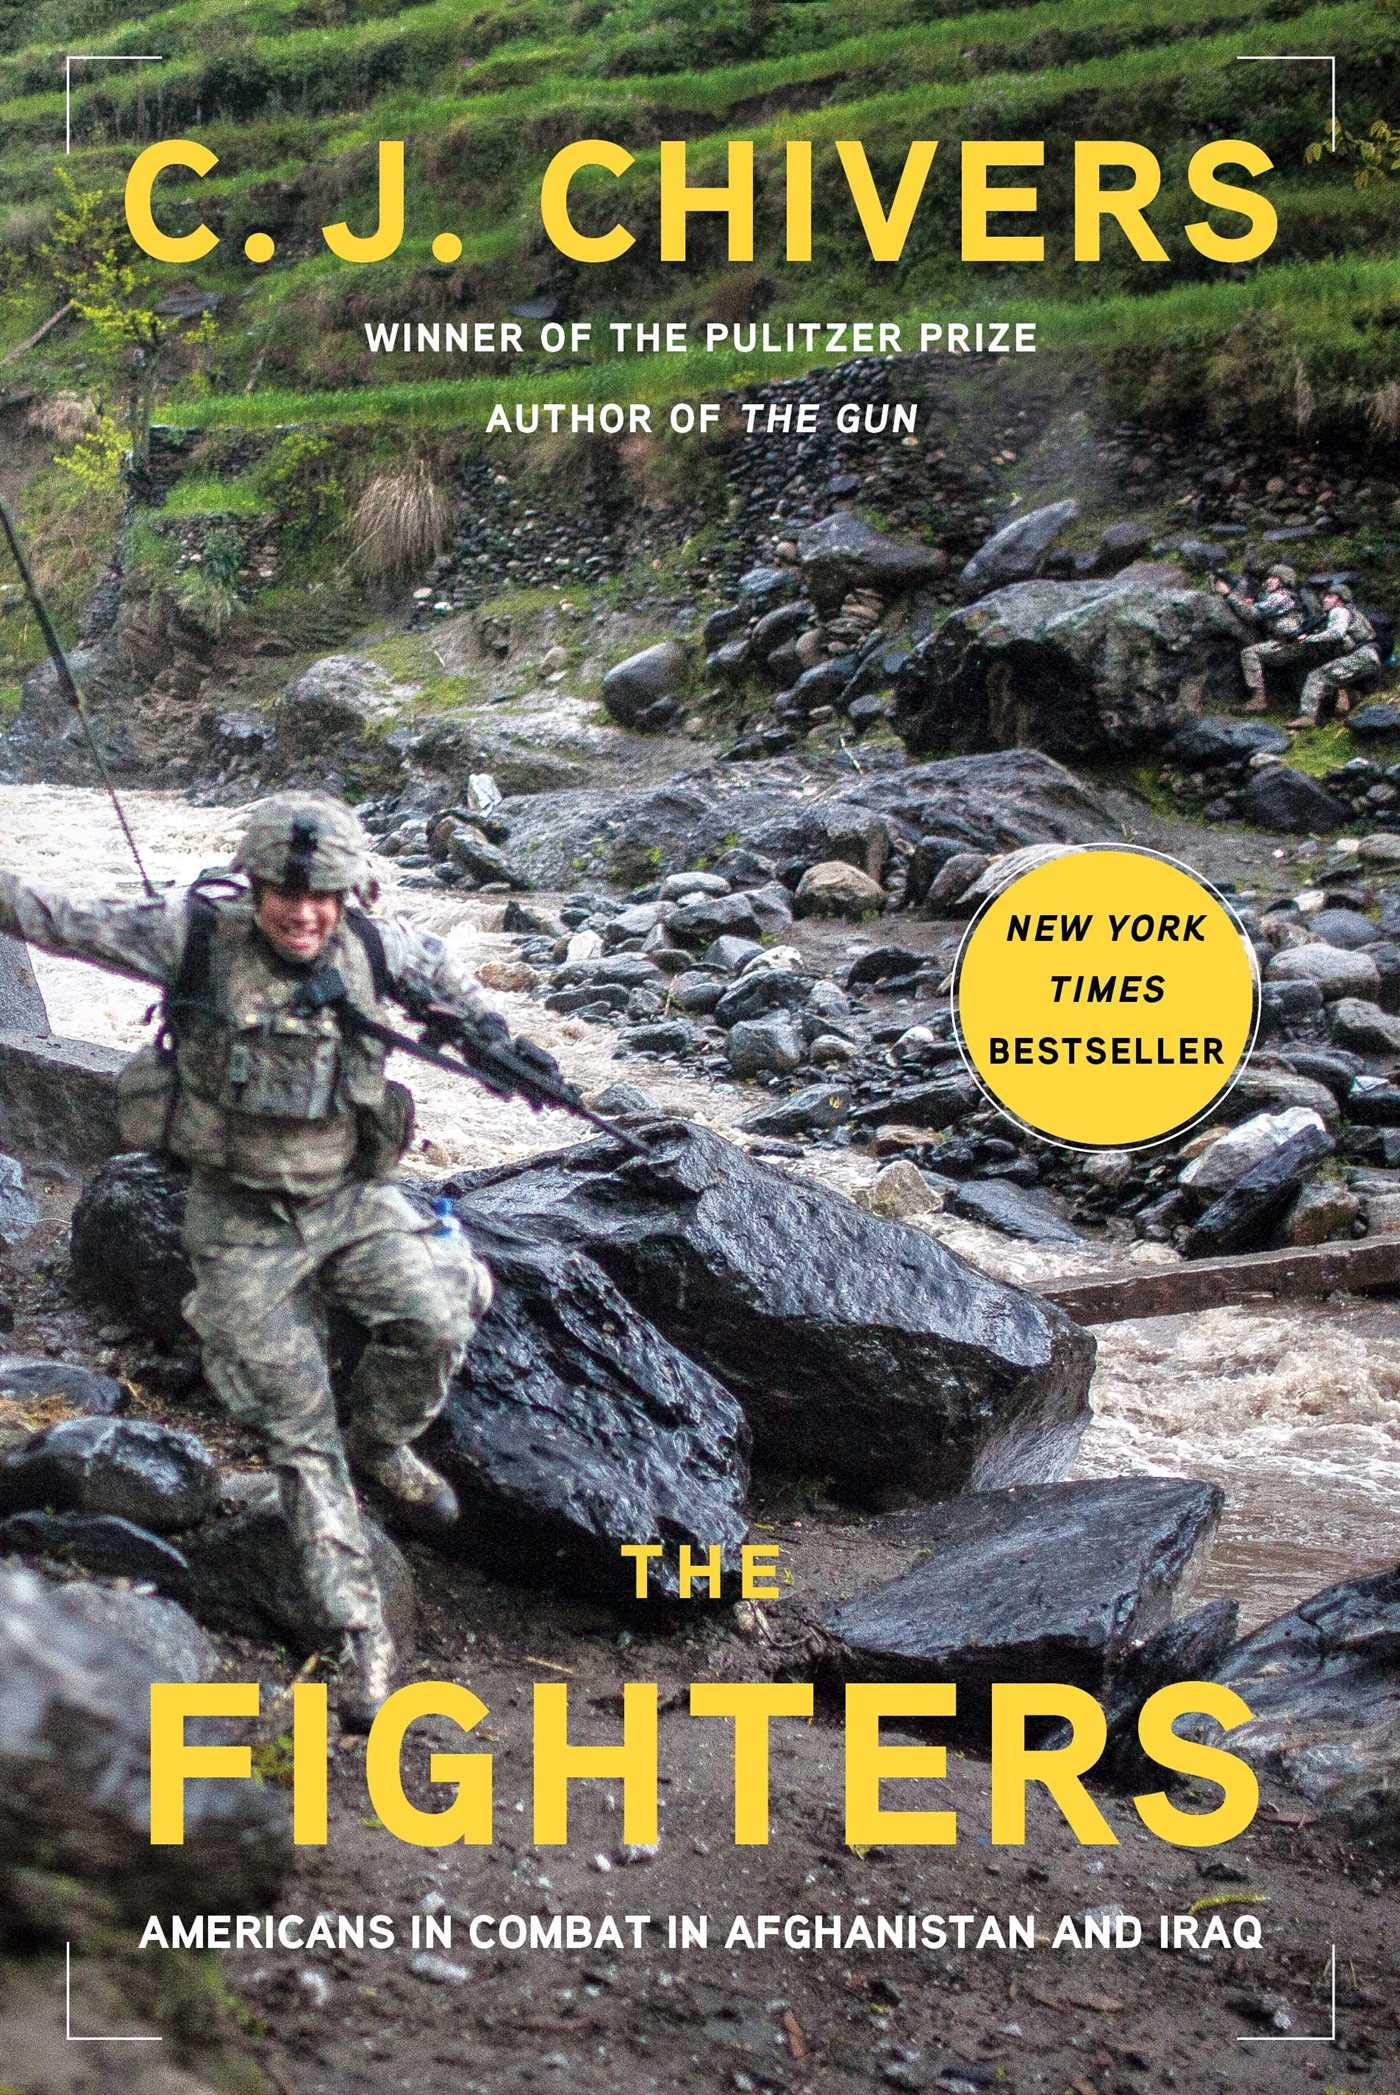 Iraq Combat Is Over And War Is History >> The Fighters C J Chivers 9781451676648 Amazon Com Books